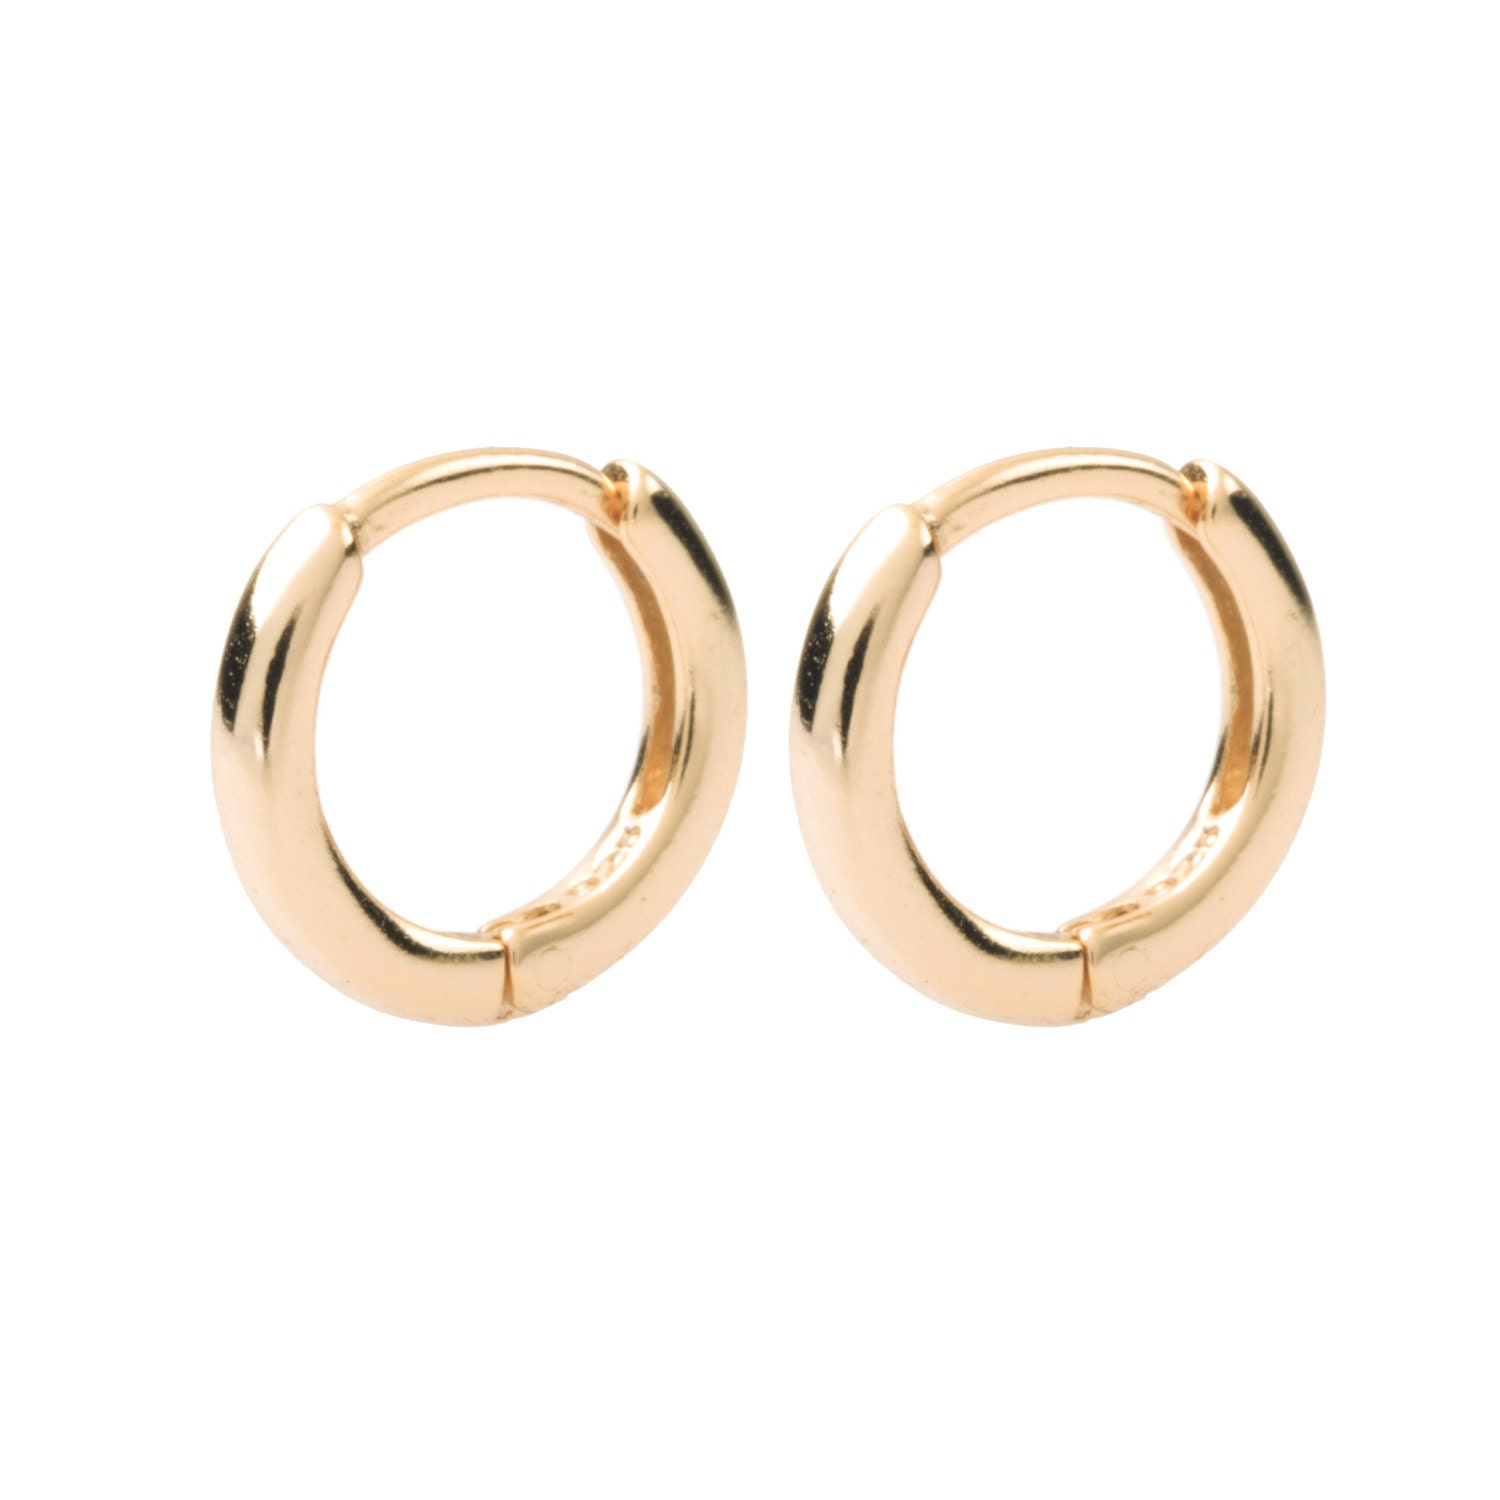 small hoop earrings tiny gold hoops dainty earrings